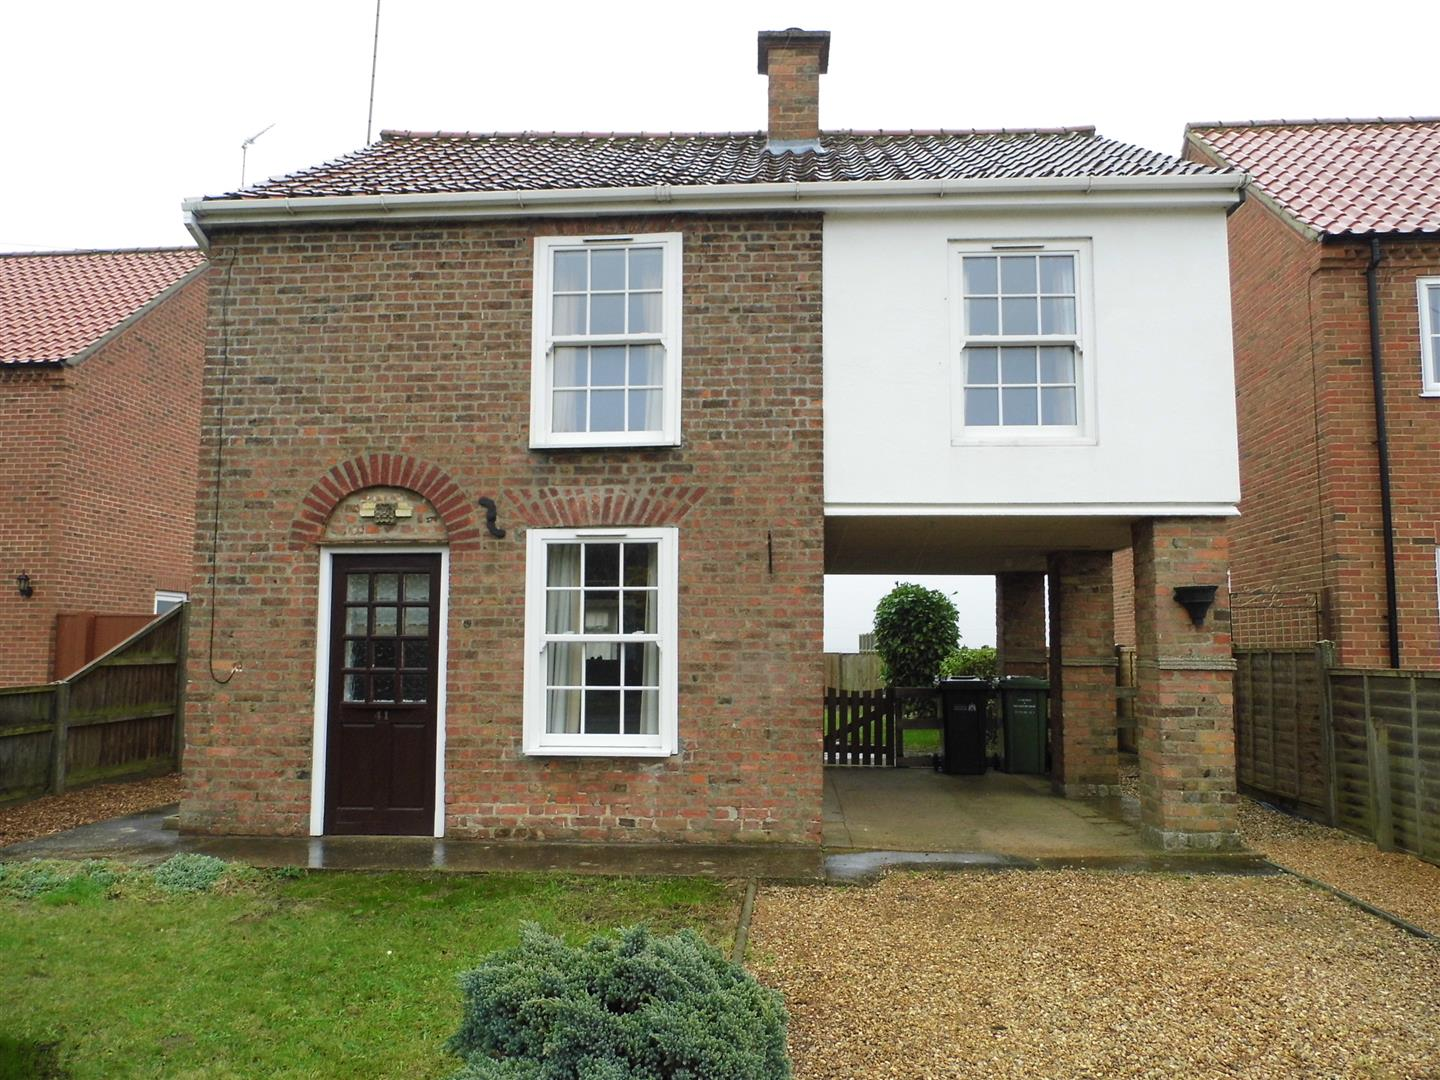 2 bed house to rent in King's Lynn, PE34 4PL - Property Image 1